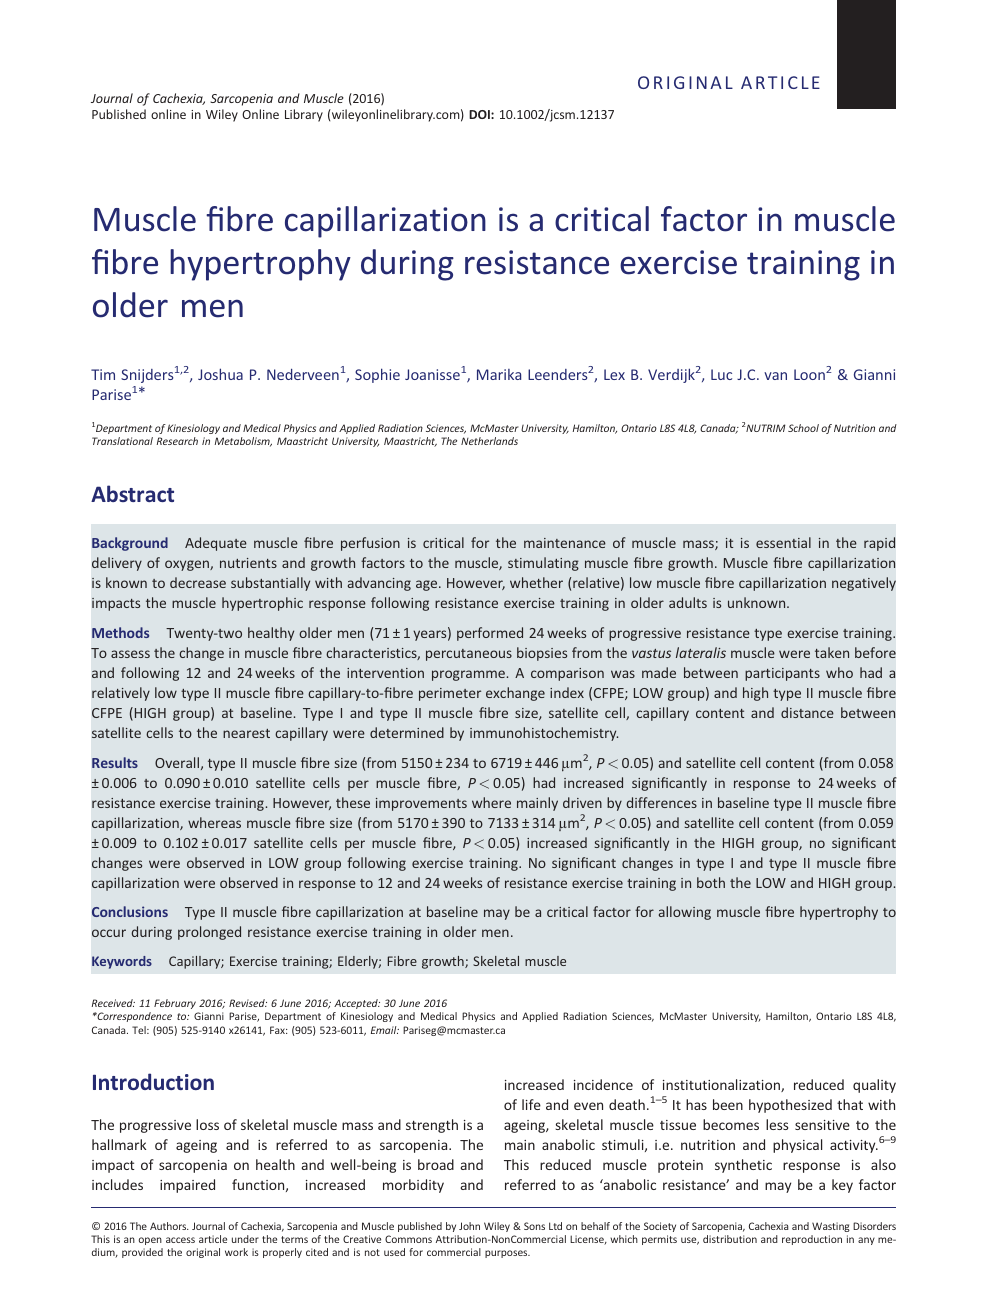 Muscle fibre capillarization is a critical factor in muscle